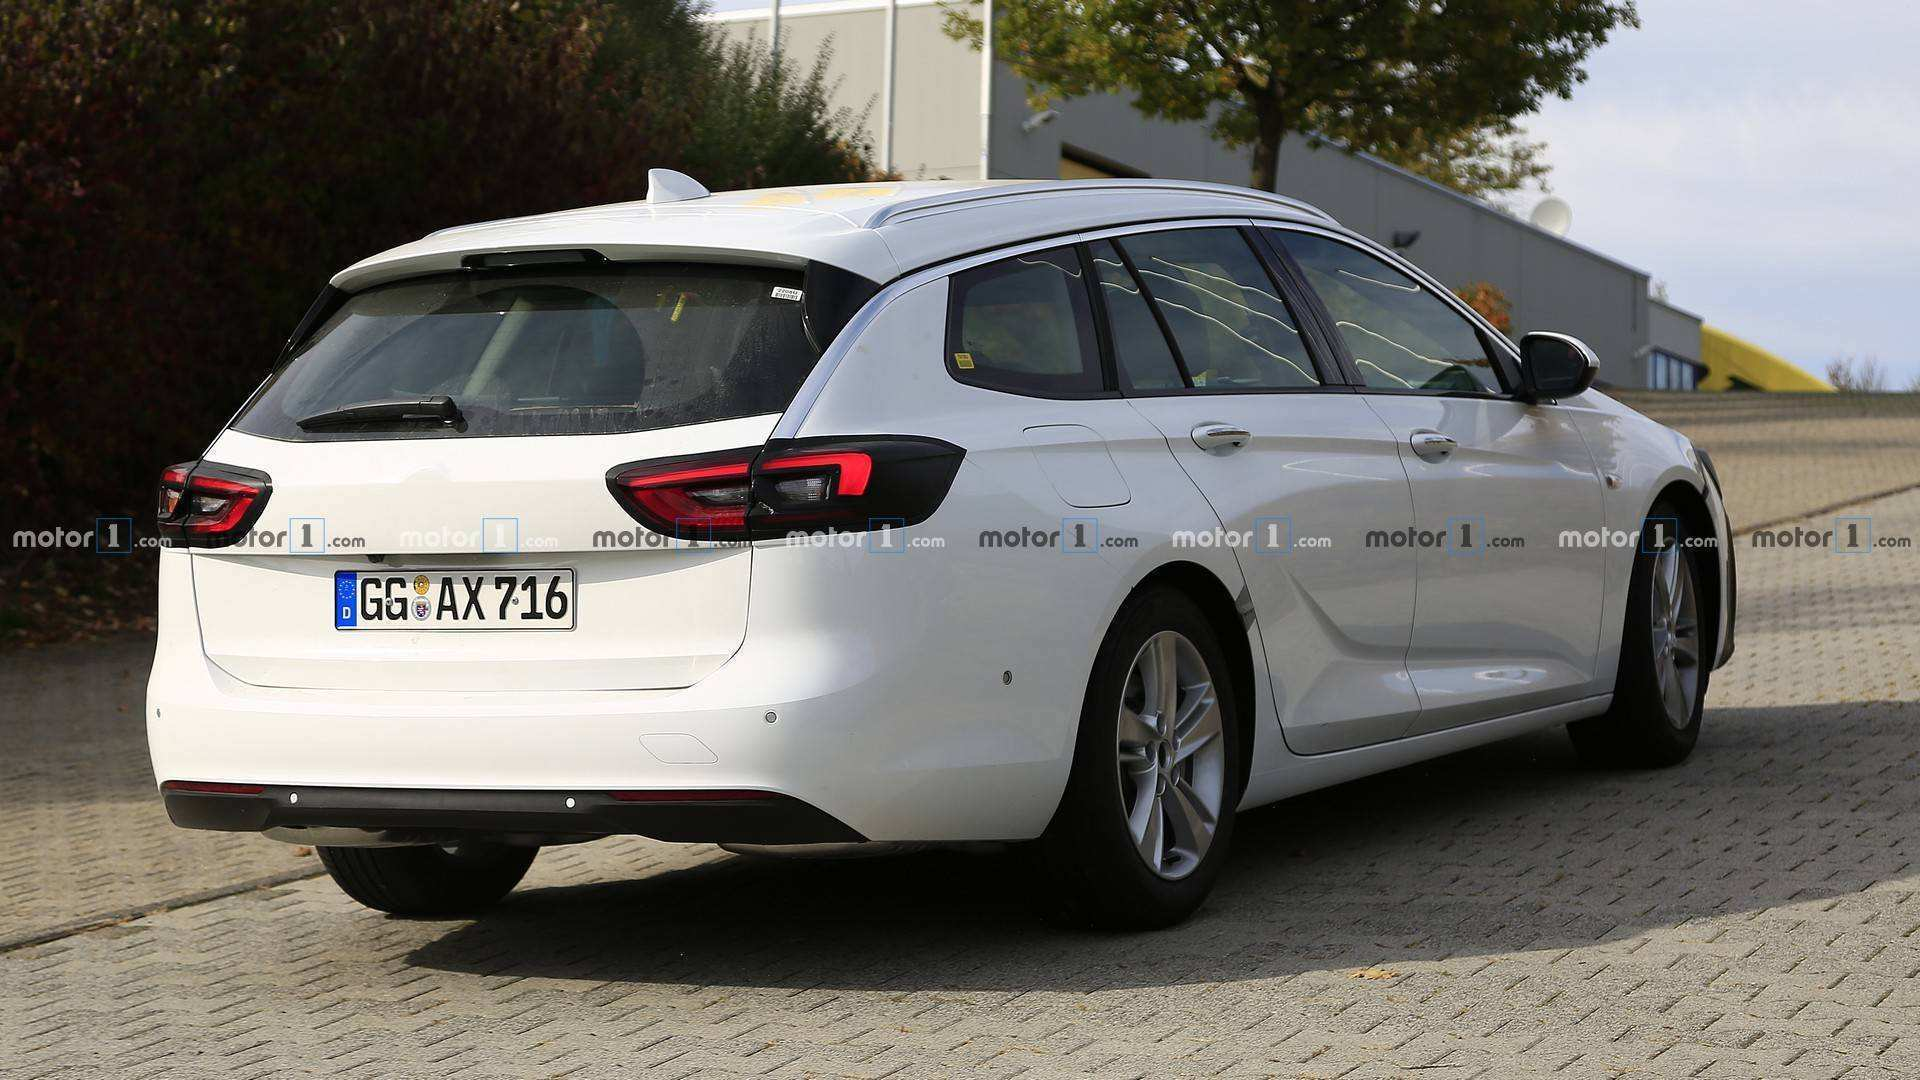 96 New Opel Insignia 2020 Pricing with Opel Insignia 2020